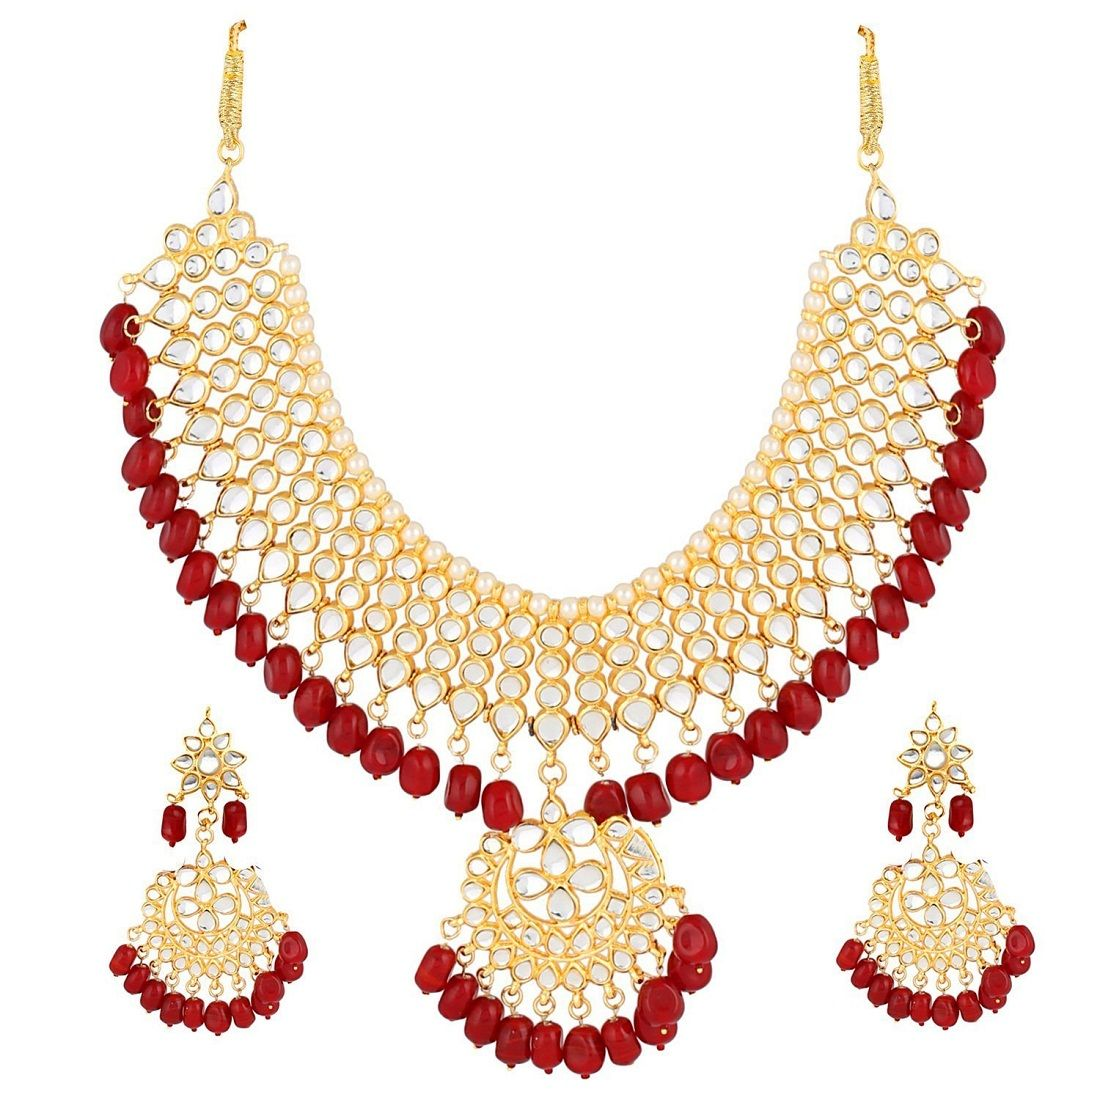 cba623ad79e1f Ankur gorgeous gold plated kundan and red pearl choker wedding ...